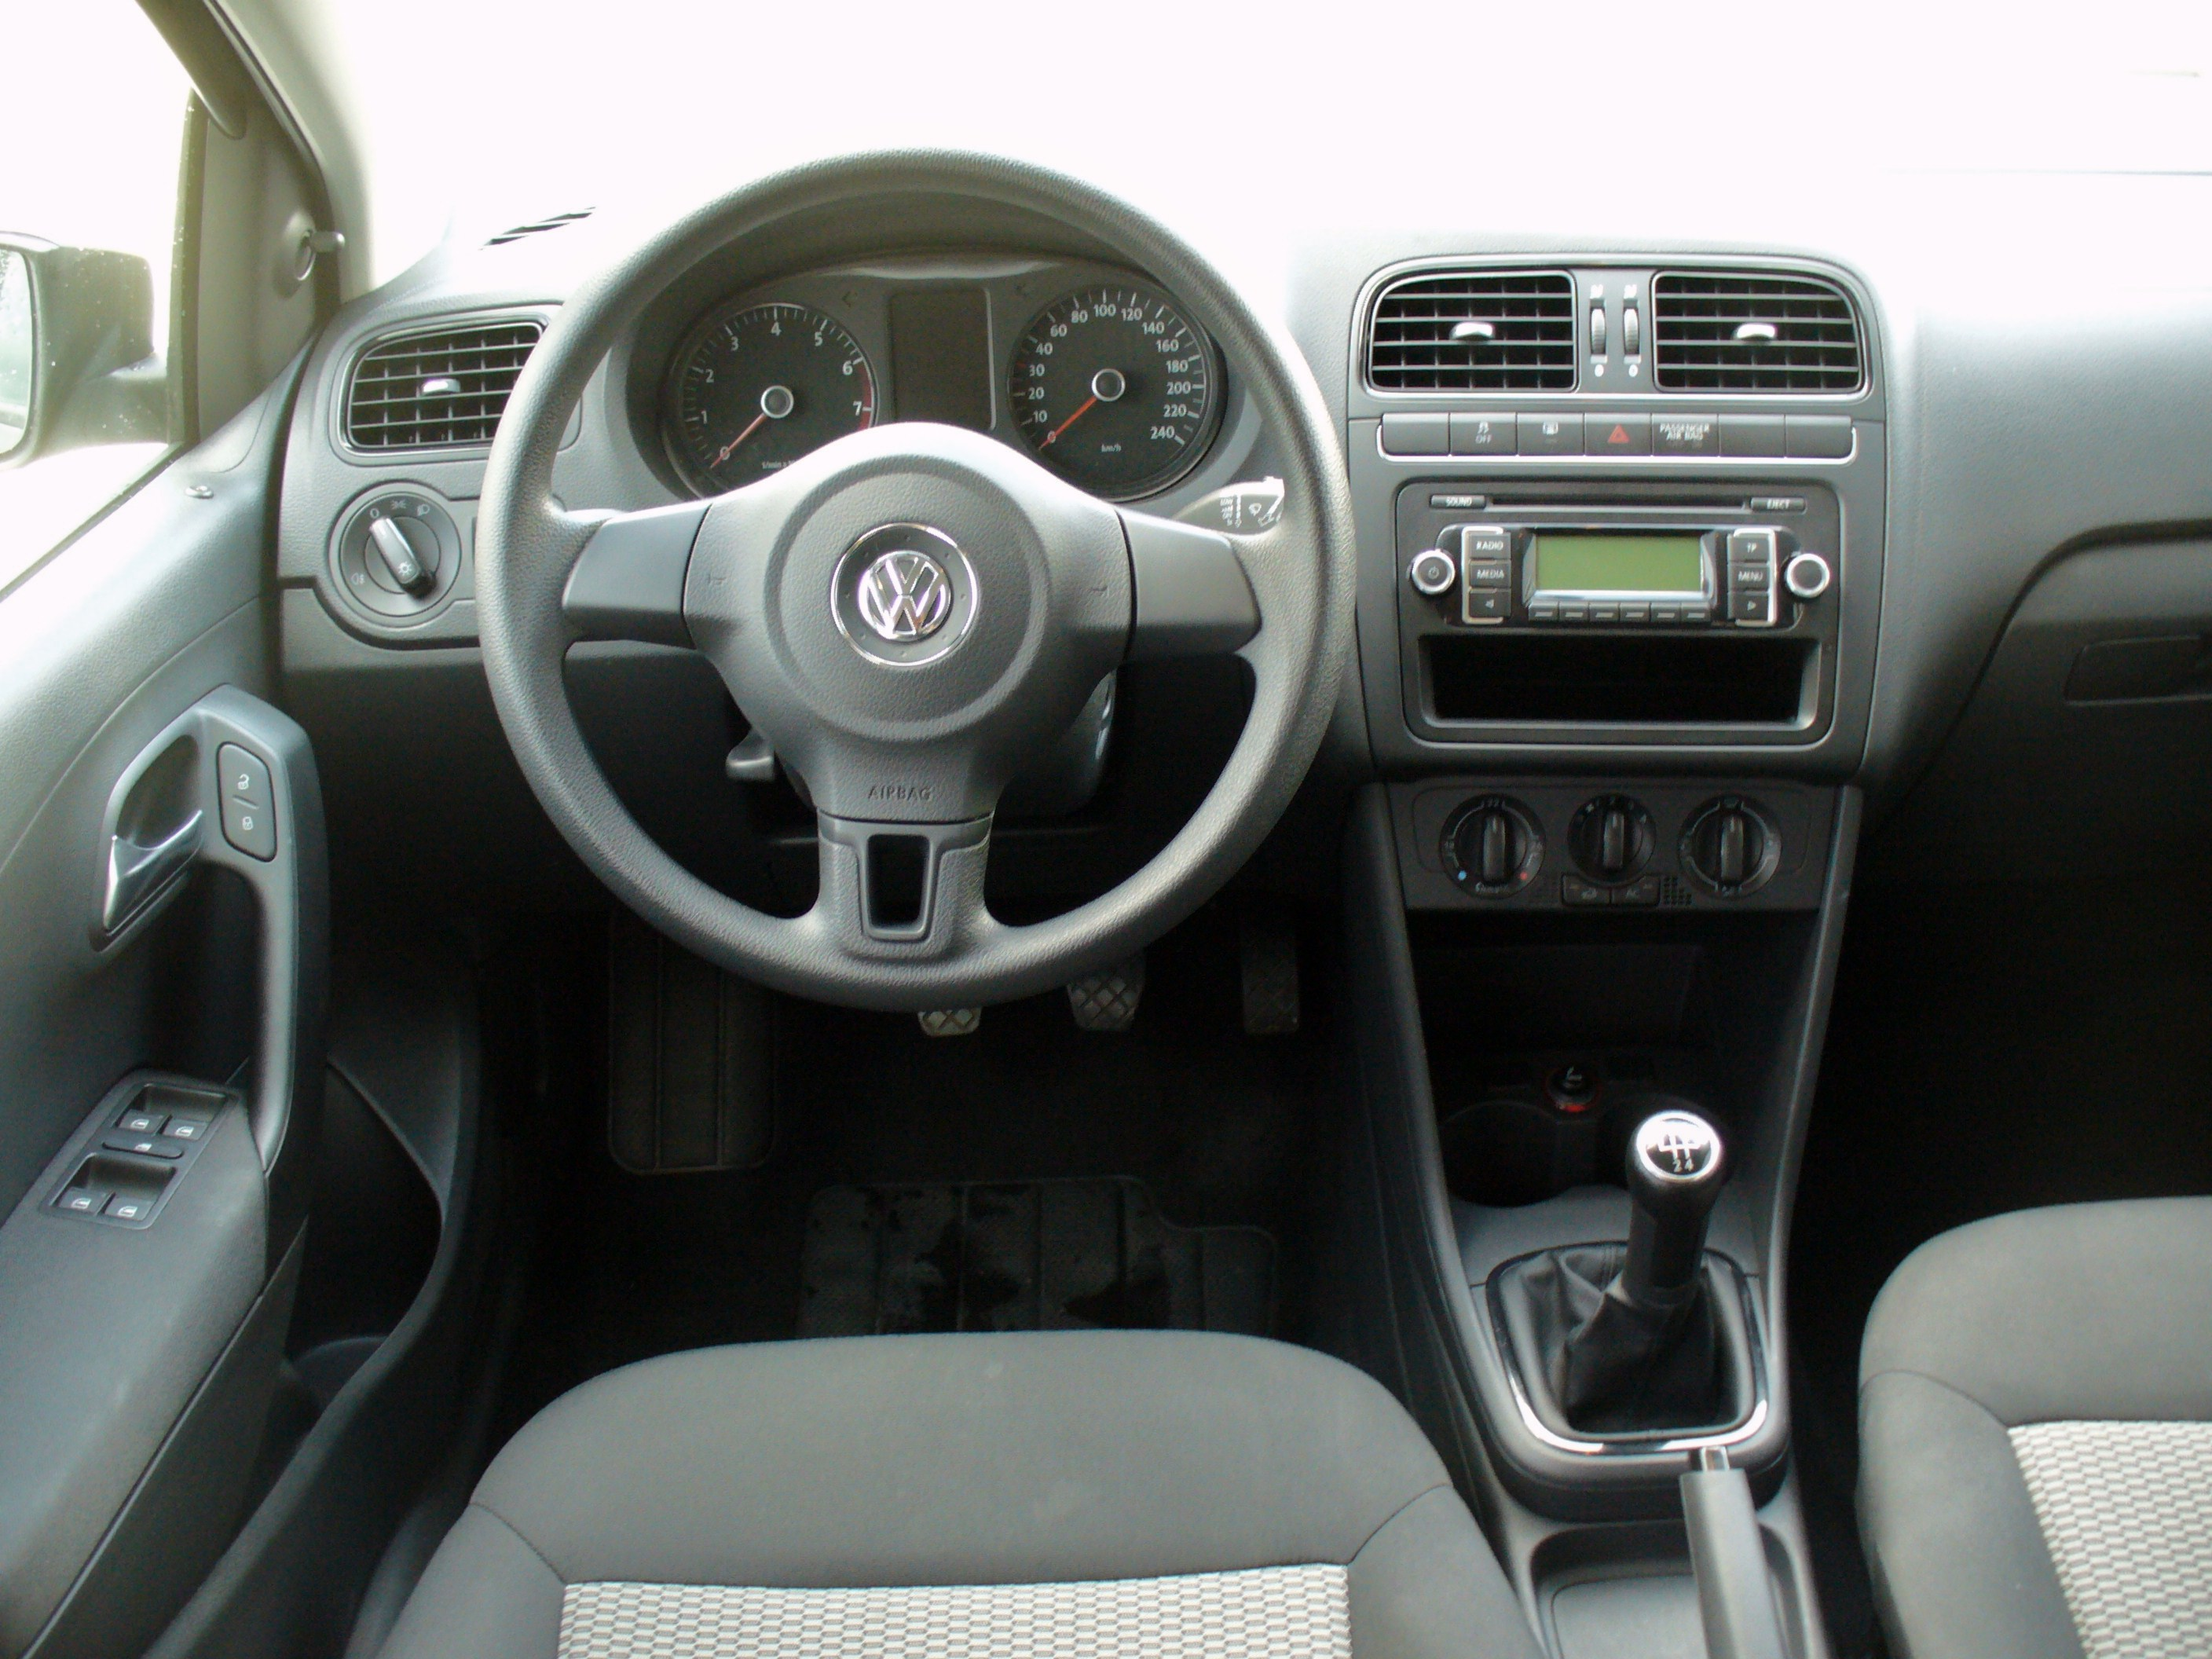 File Vw Polo V 1 2 Trendline Interieur Jpg Wikipedia